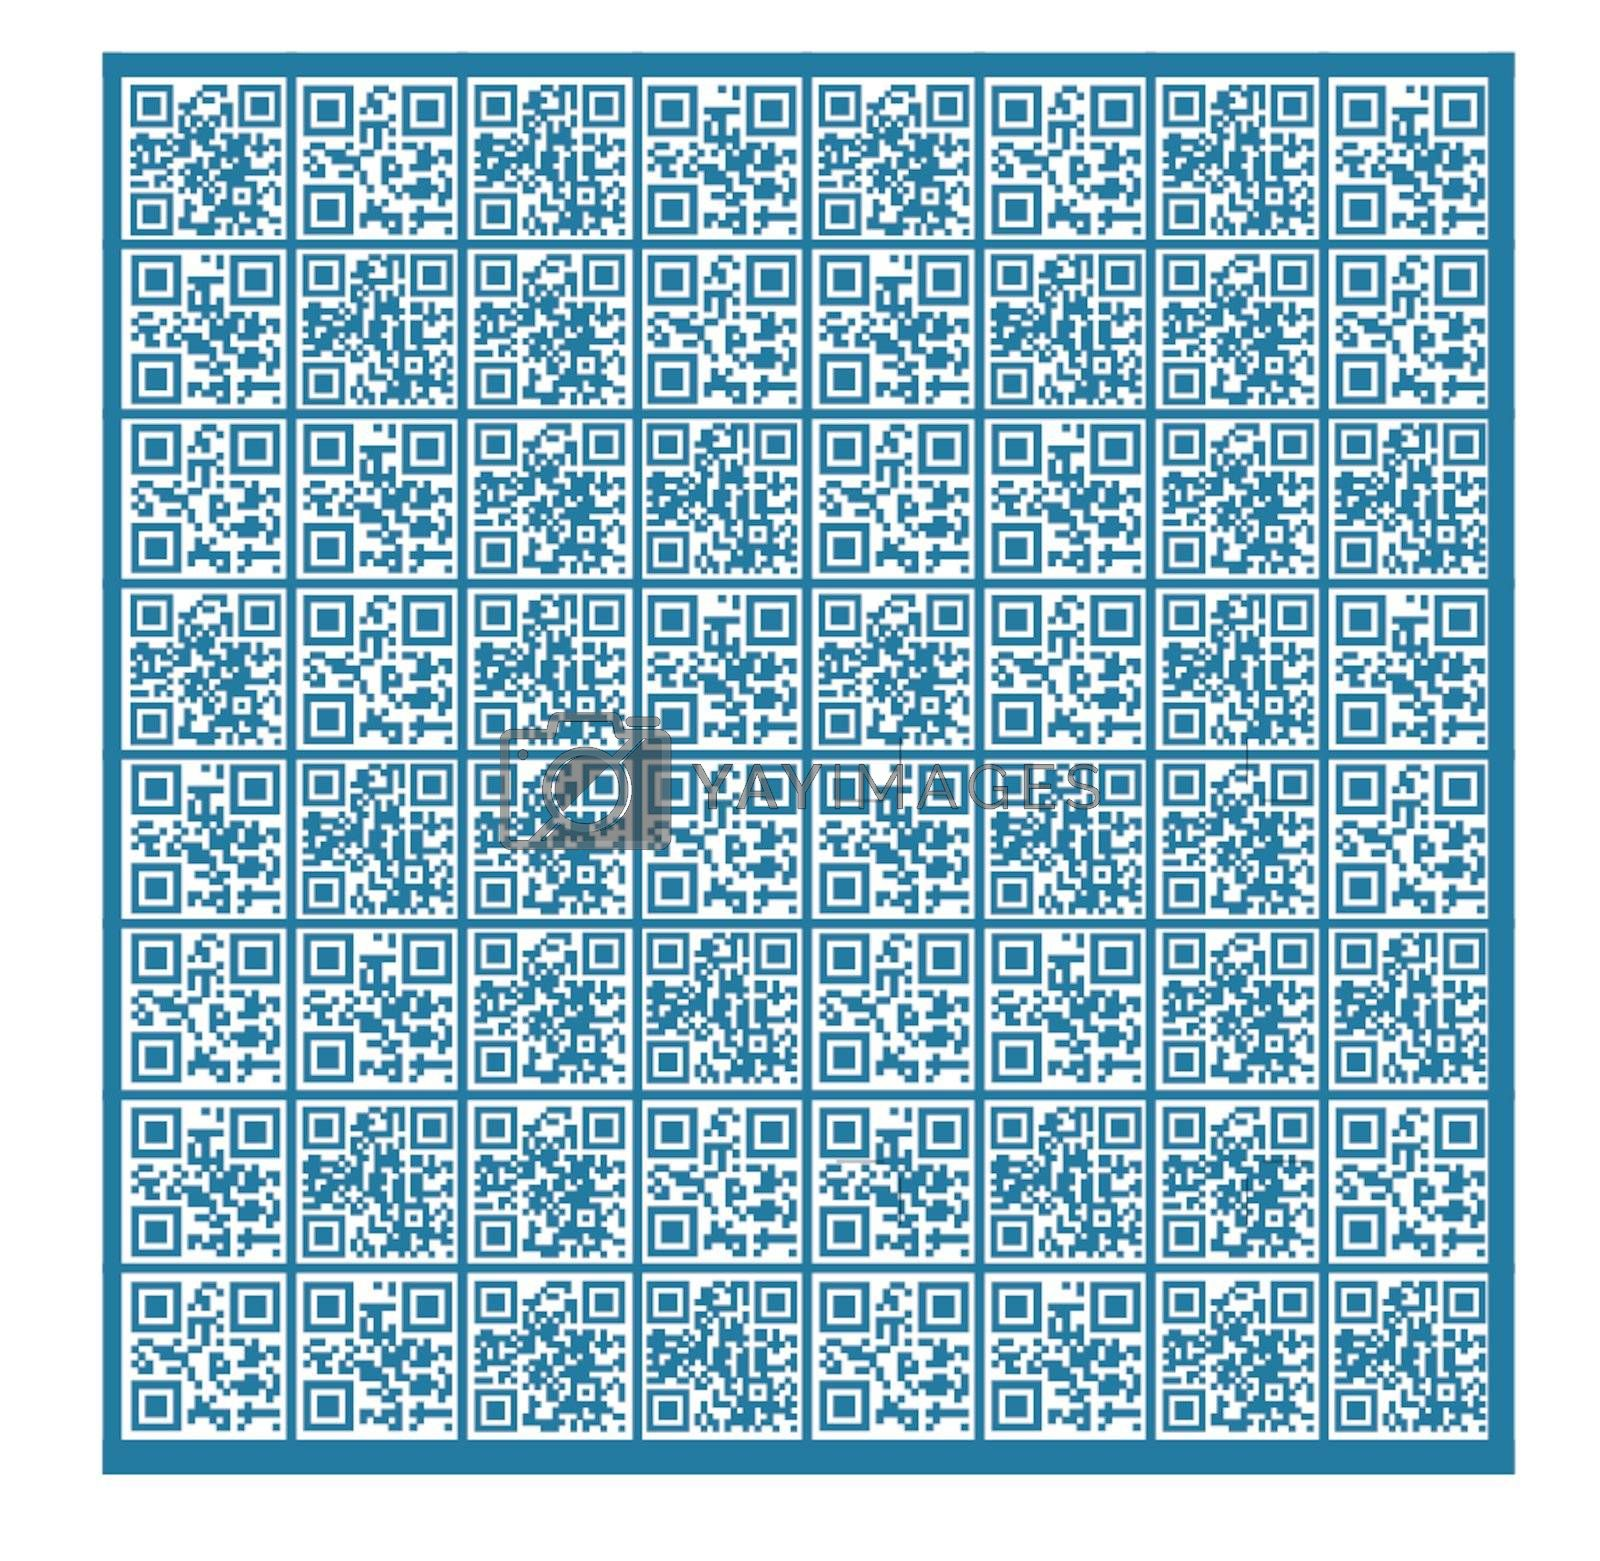 Abstract QR Code Background (Words: Love, Tenderness, Passion, Care)